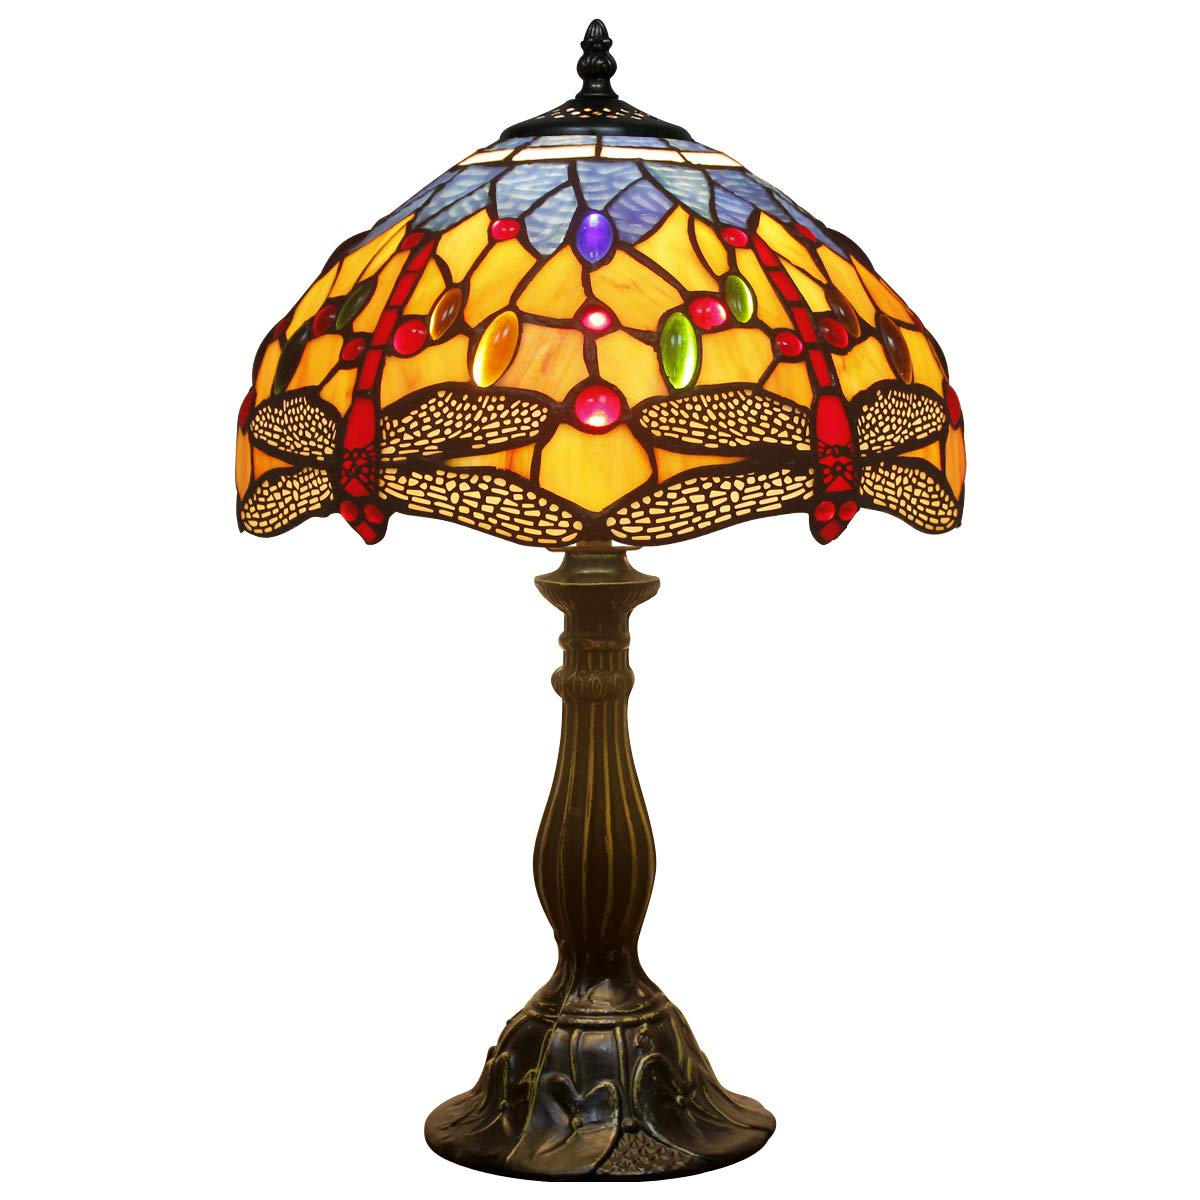 Tiffany Lamps Orange Blue Stained Glass and Crystal Bead Dragonfly Style Table Lamp Height 18 Inch for Coffee Table Living Room Antique Desk Beside Bedroom S168 WERFACTORY S16812T02